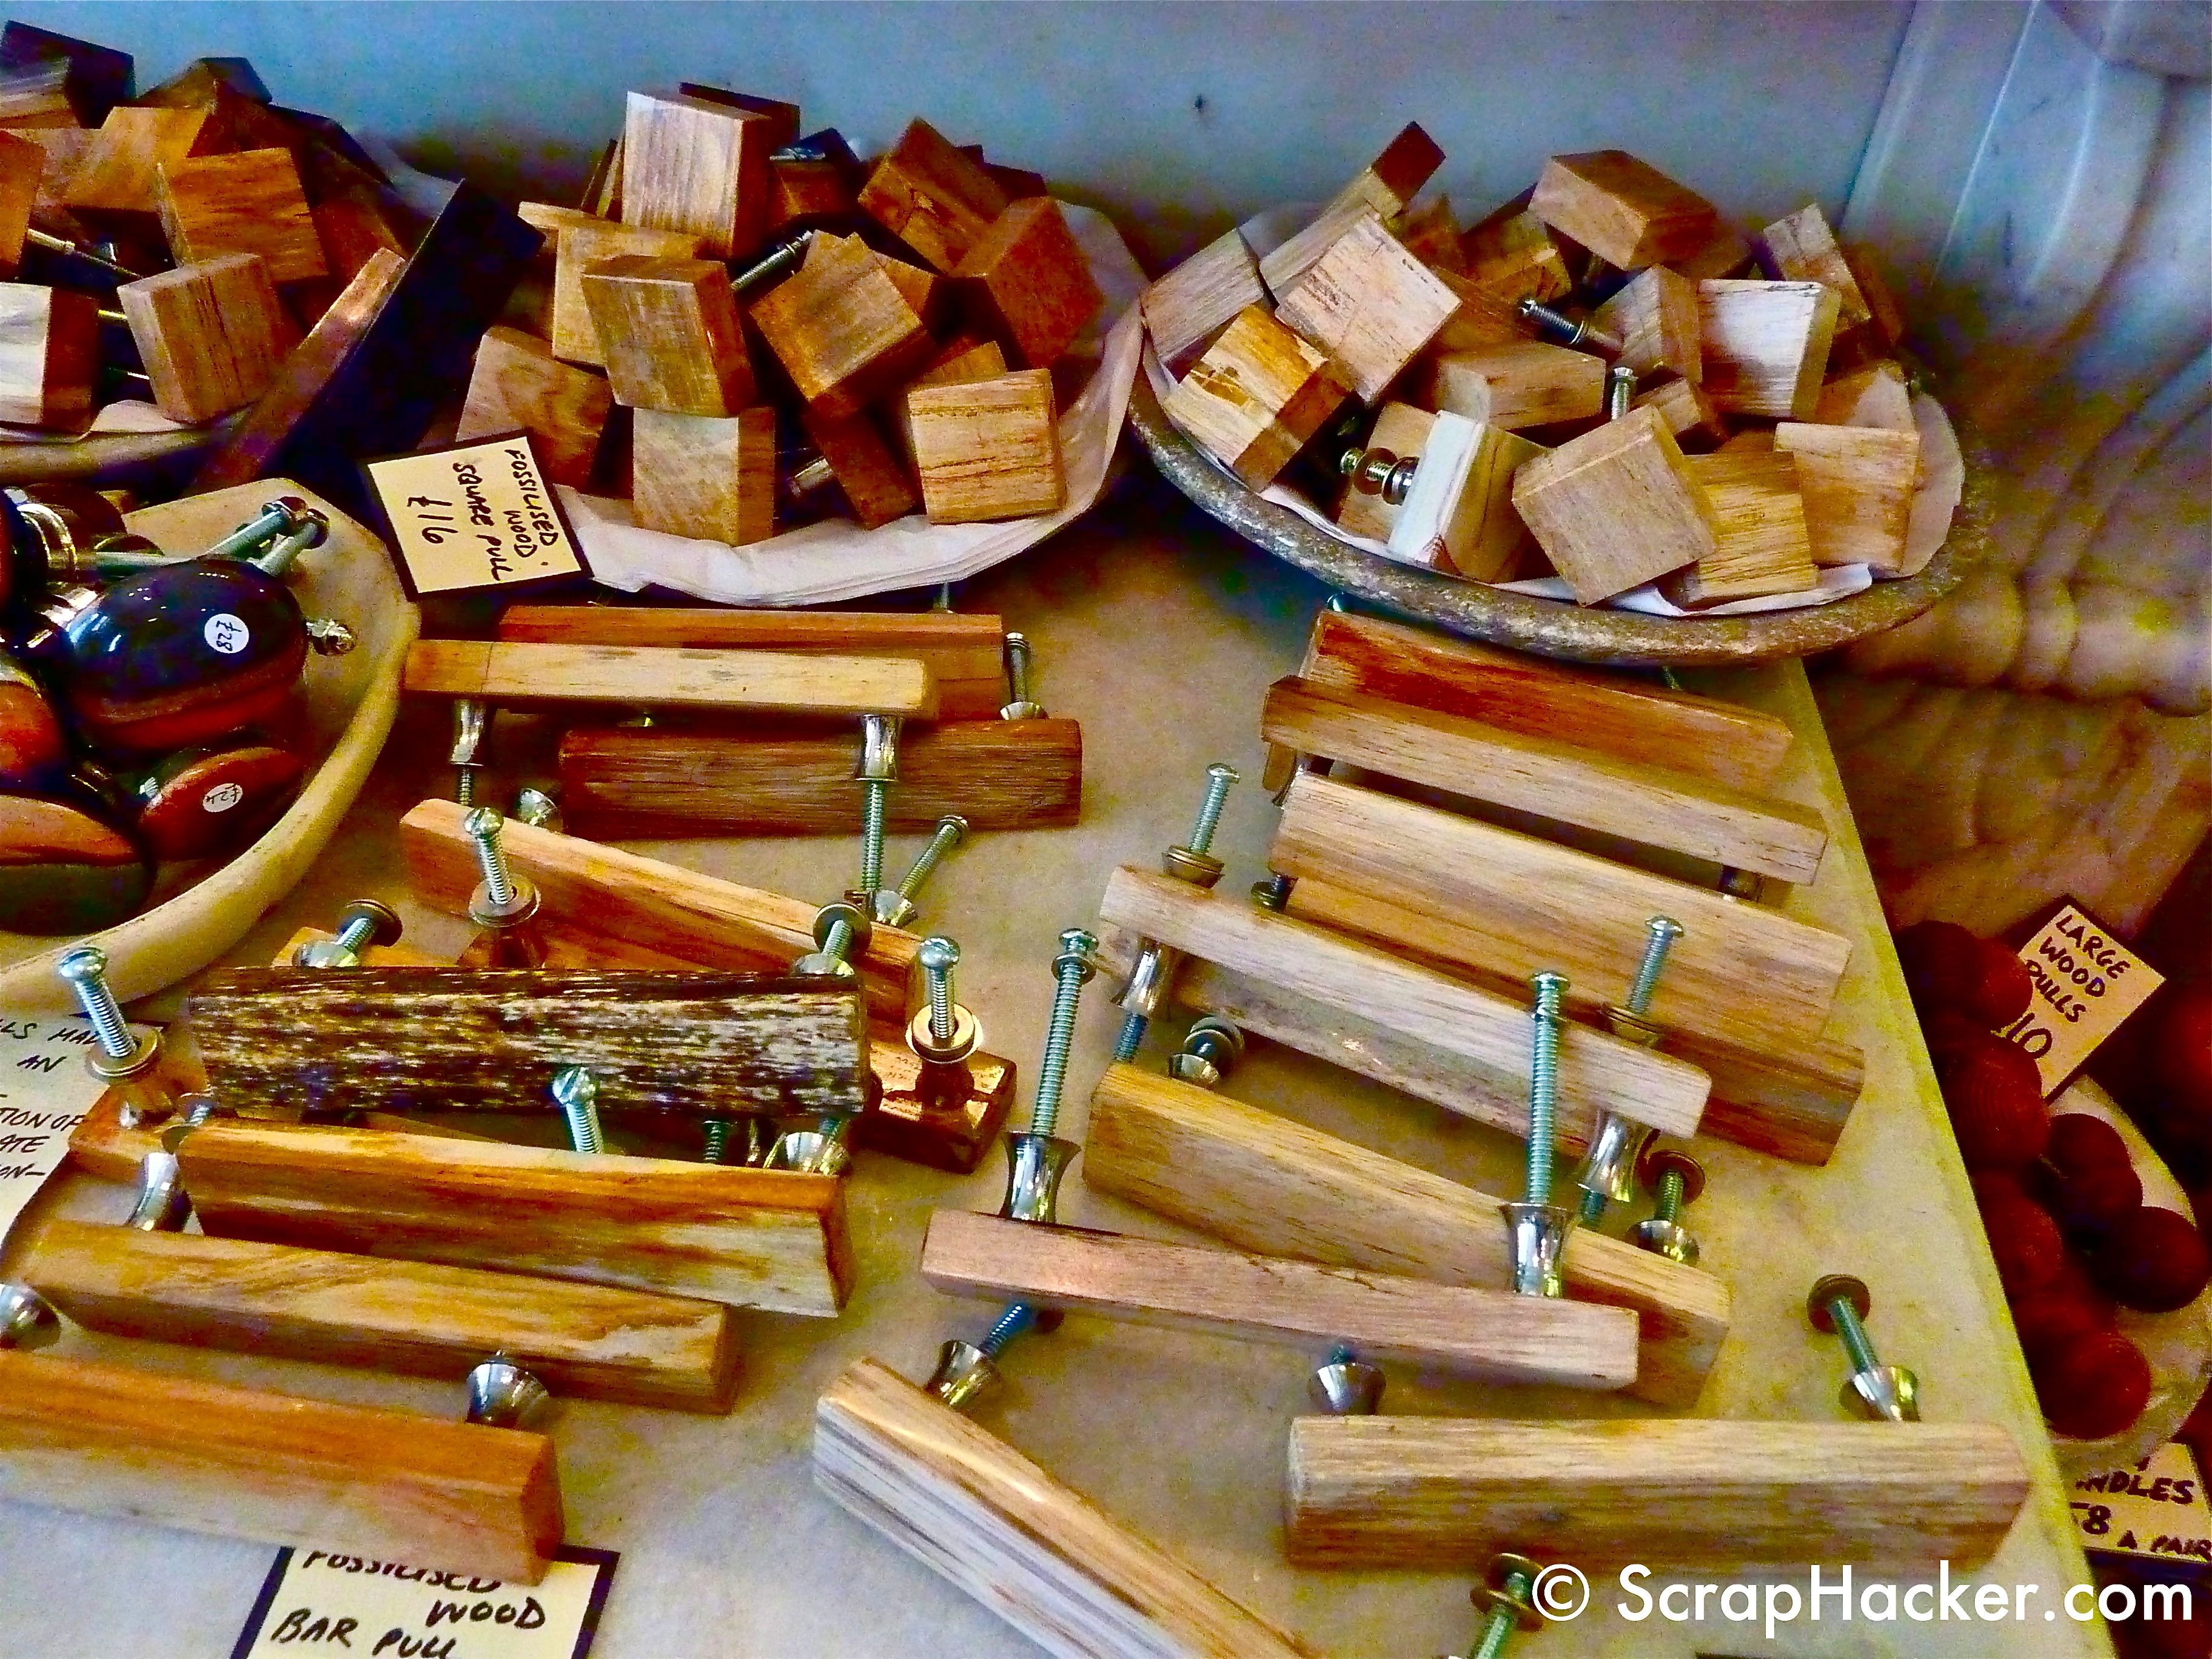 Wooden Drawer Pulls & Knobs Inspiration. by scraphacker